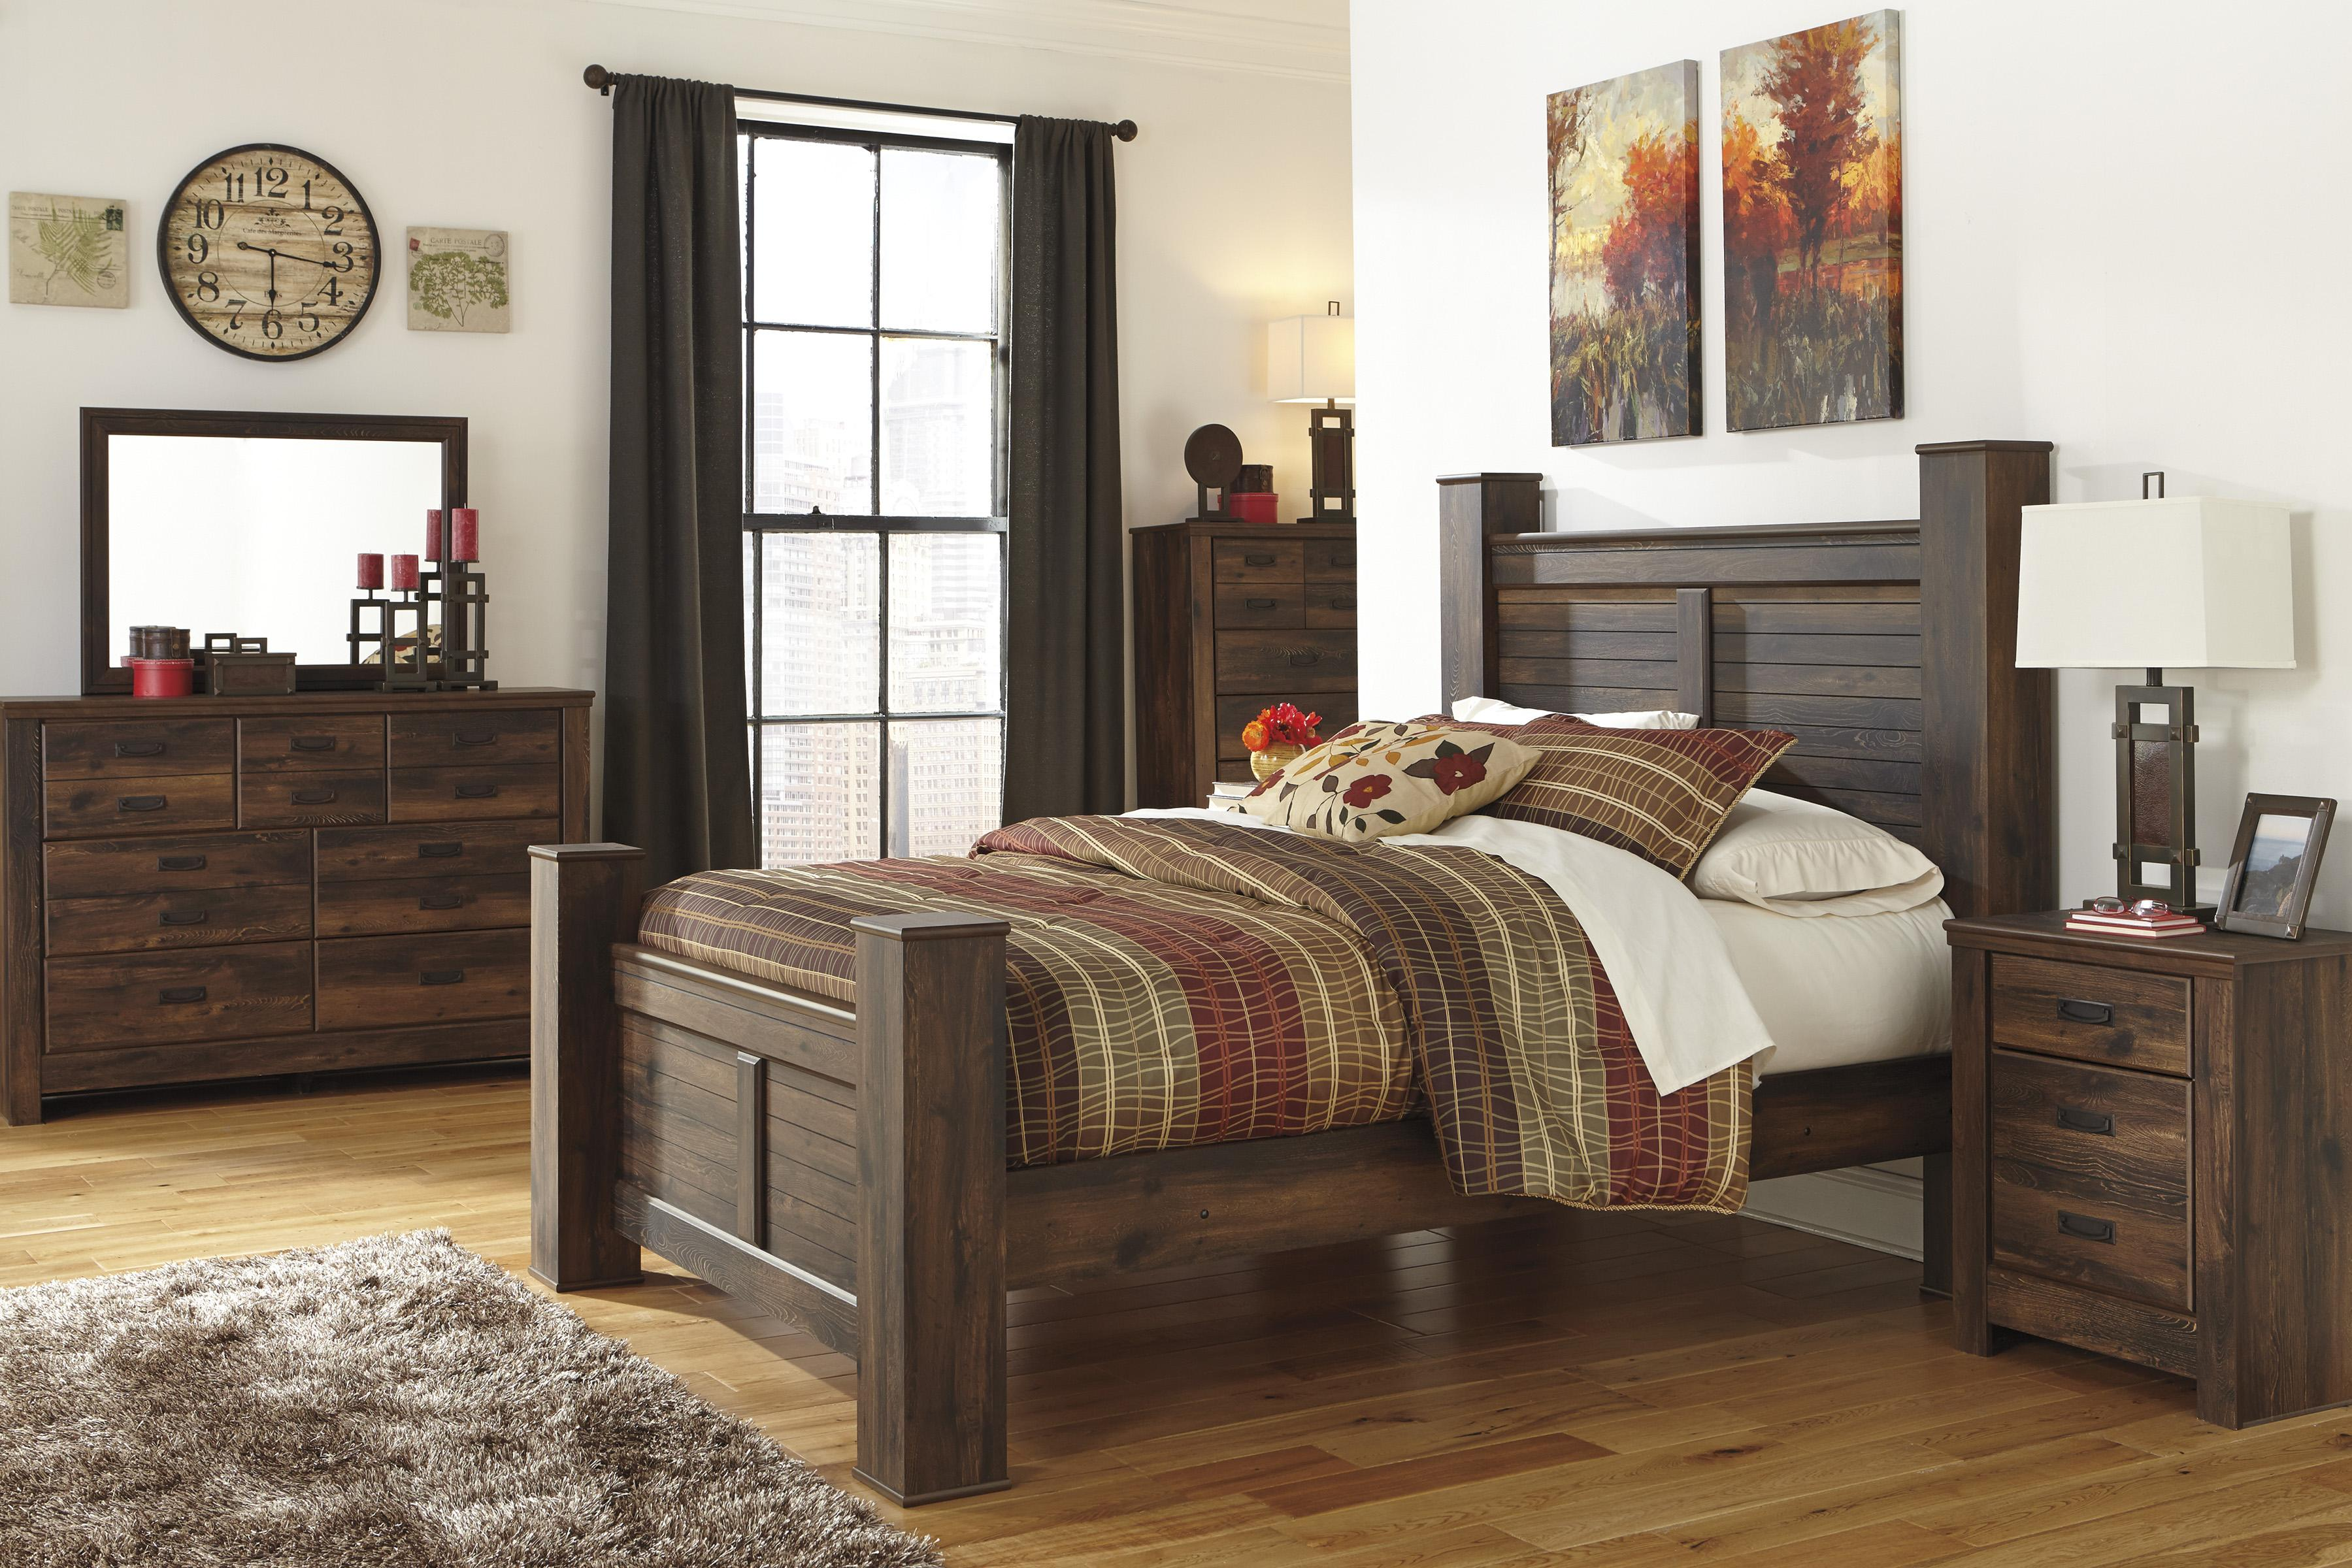 Queen Bedroom Group By Signature Design By Ashley Wolf And Gardiner Wolf Furniture